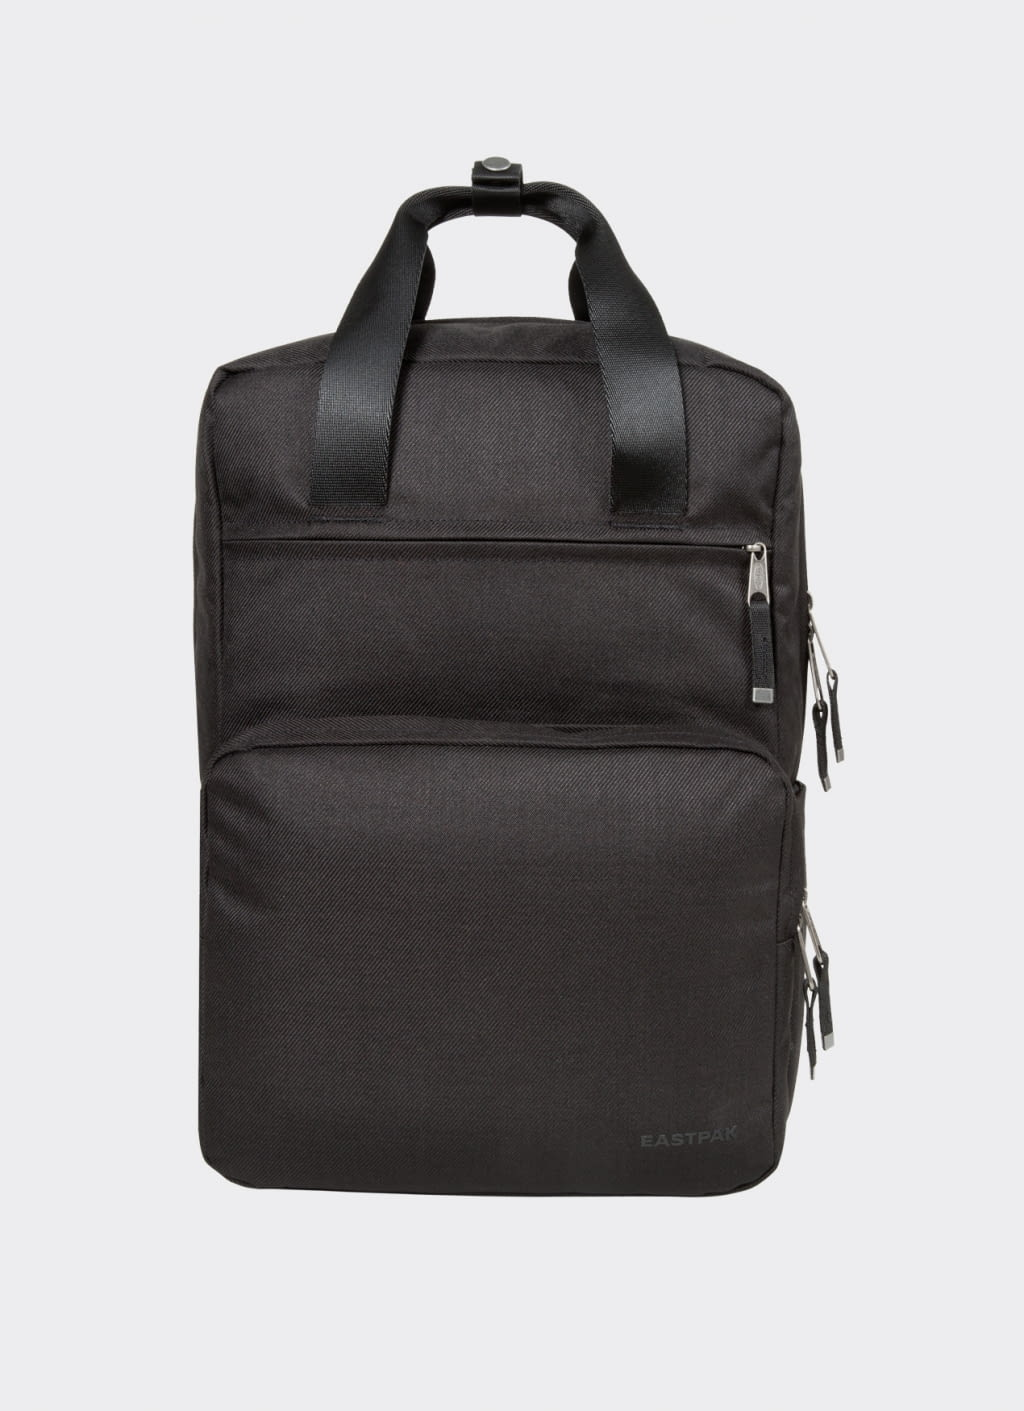 Jual Eastpak Custom Black Kyndra Backpack 100 Original Bobobobo Padded Pakr Tas Ransel